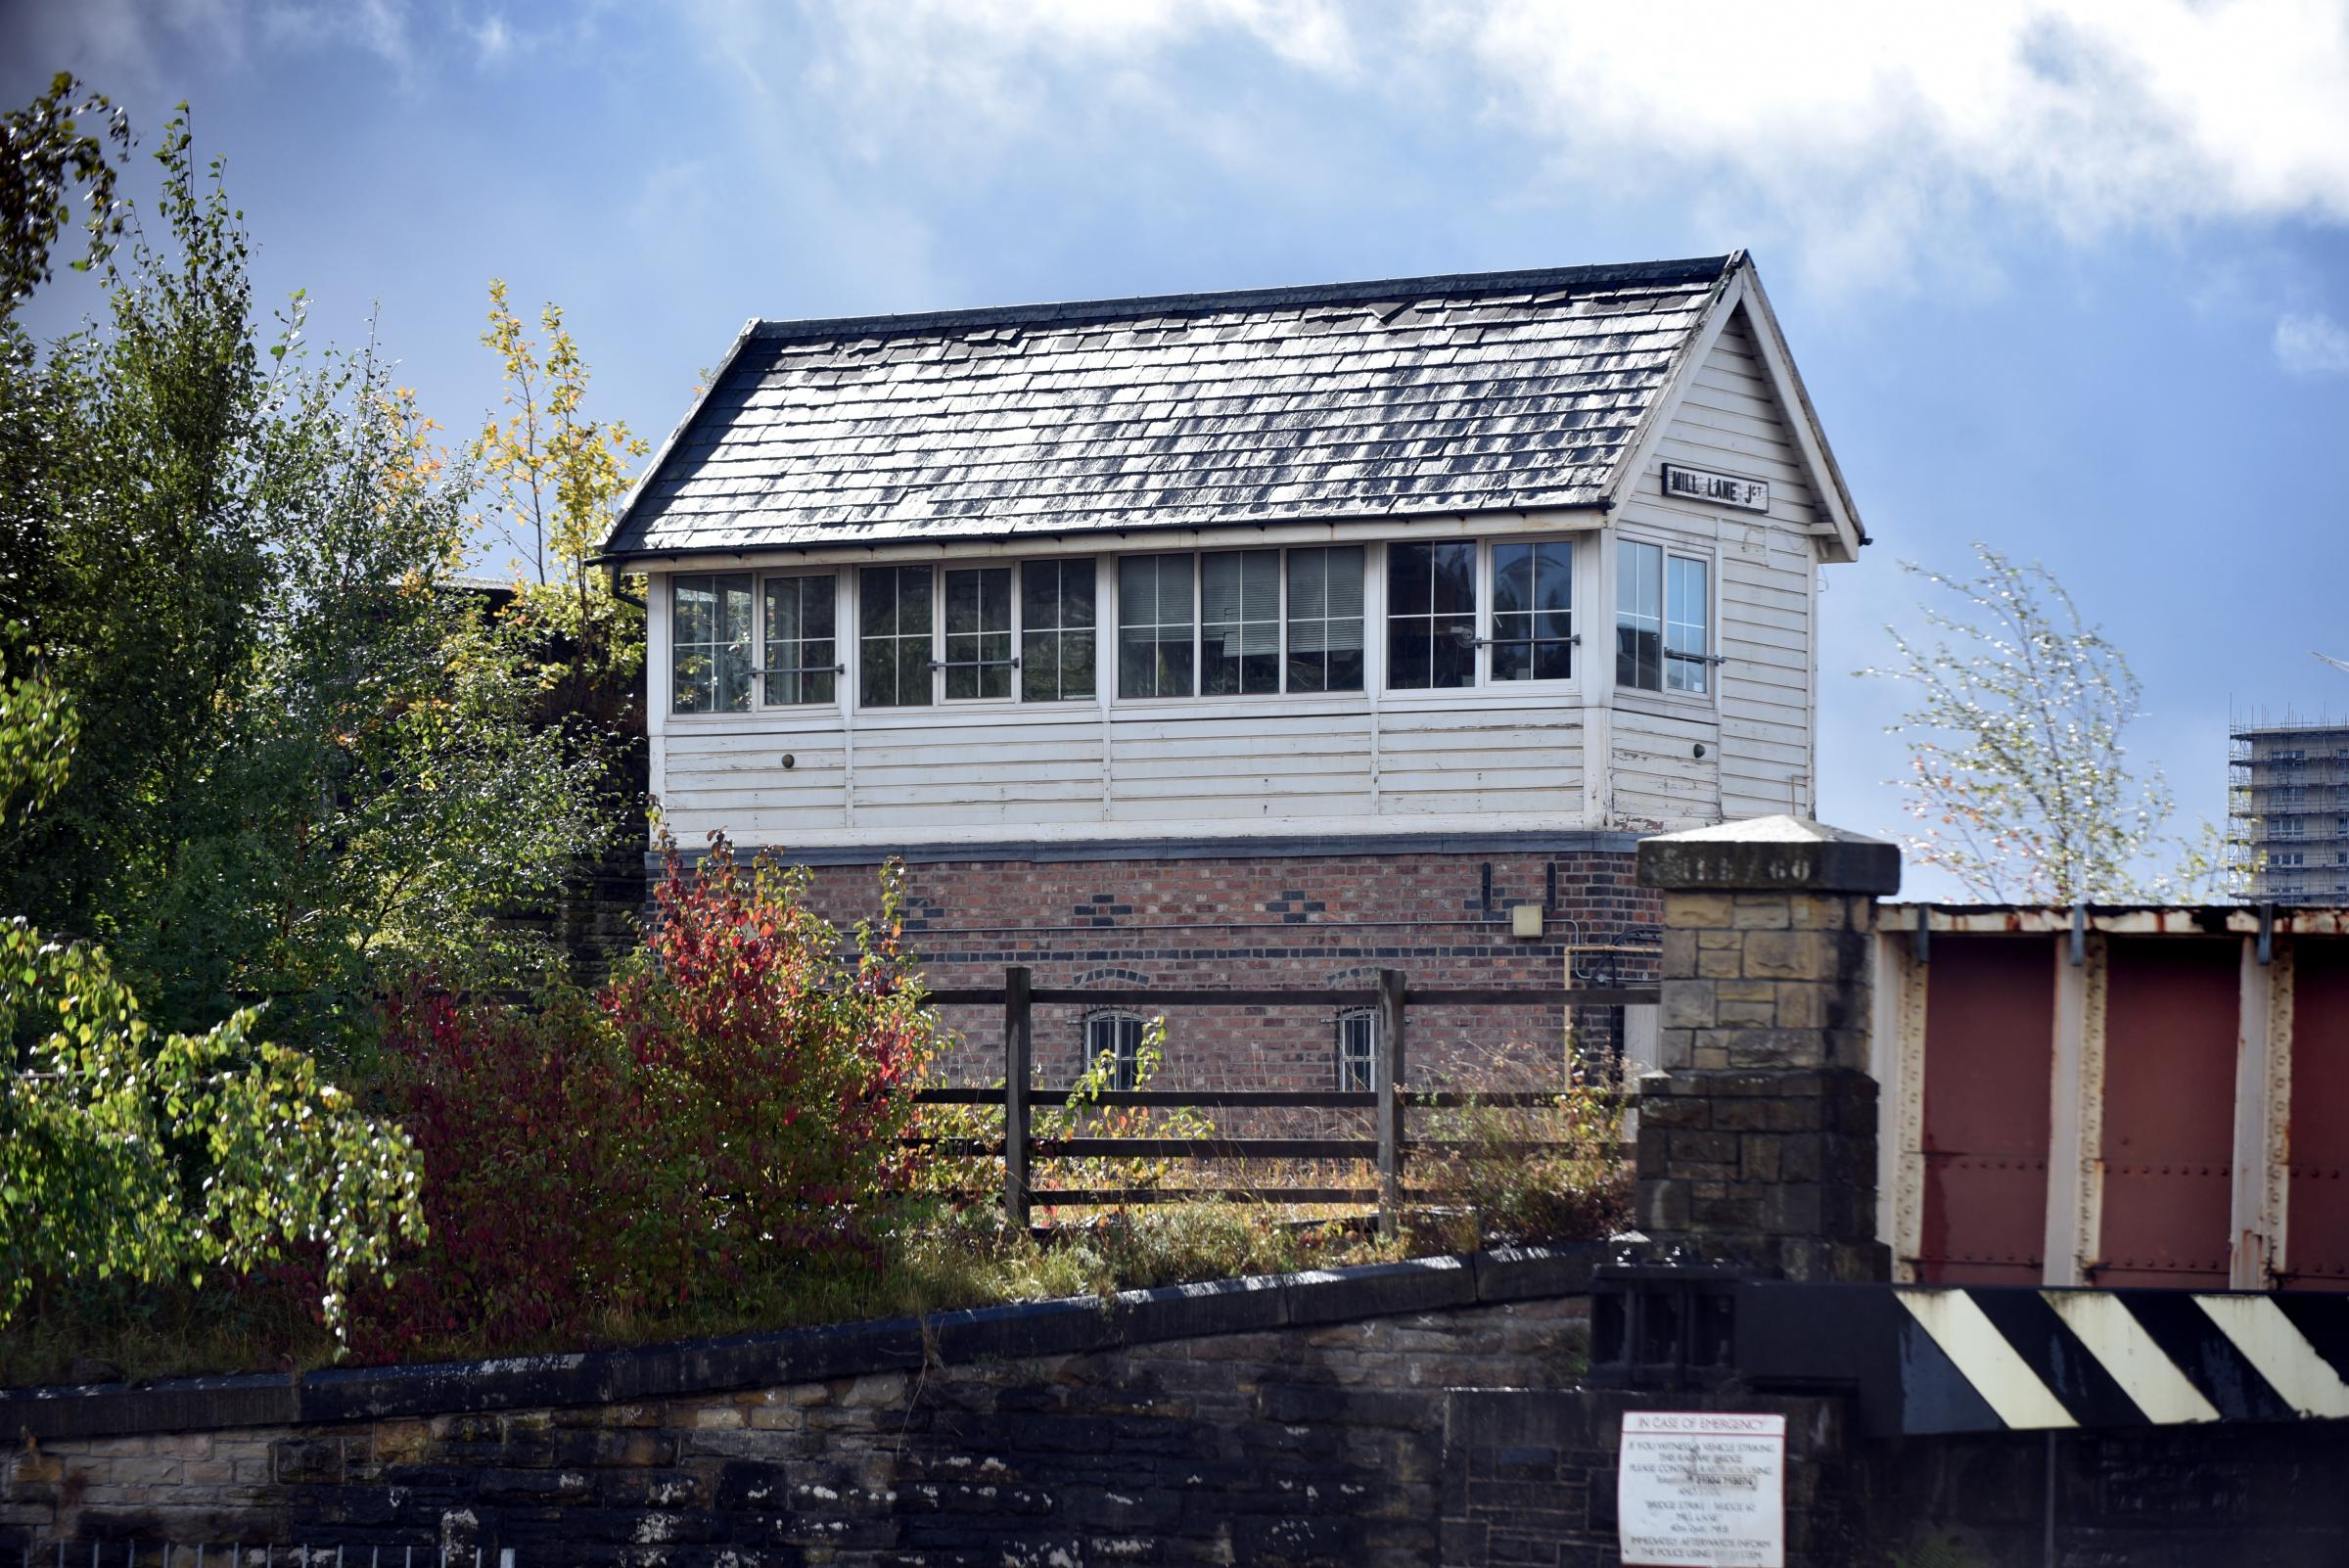 DAYS ARE NUMBERED: The signal box outside Bradford known as Mill Lane Junction is to close and its duties to be transferred to York